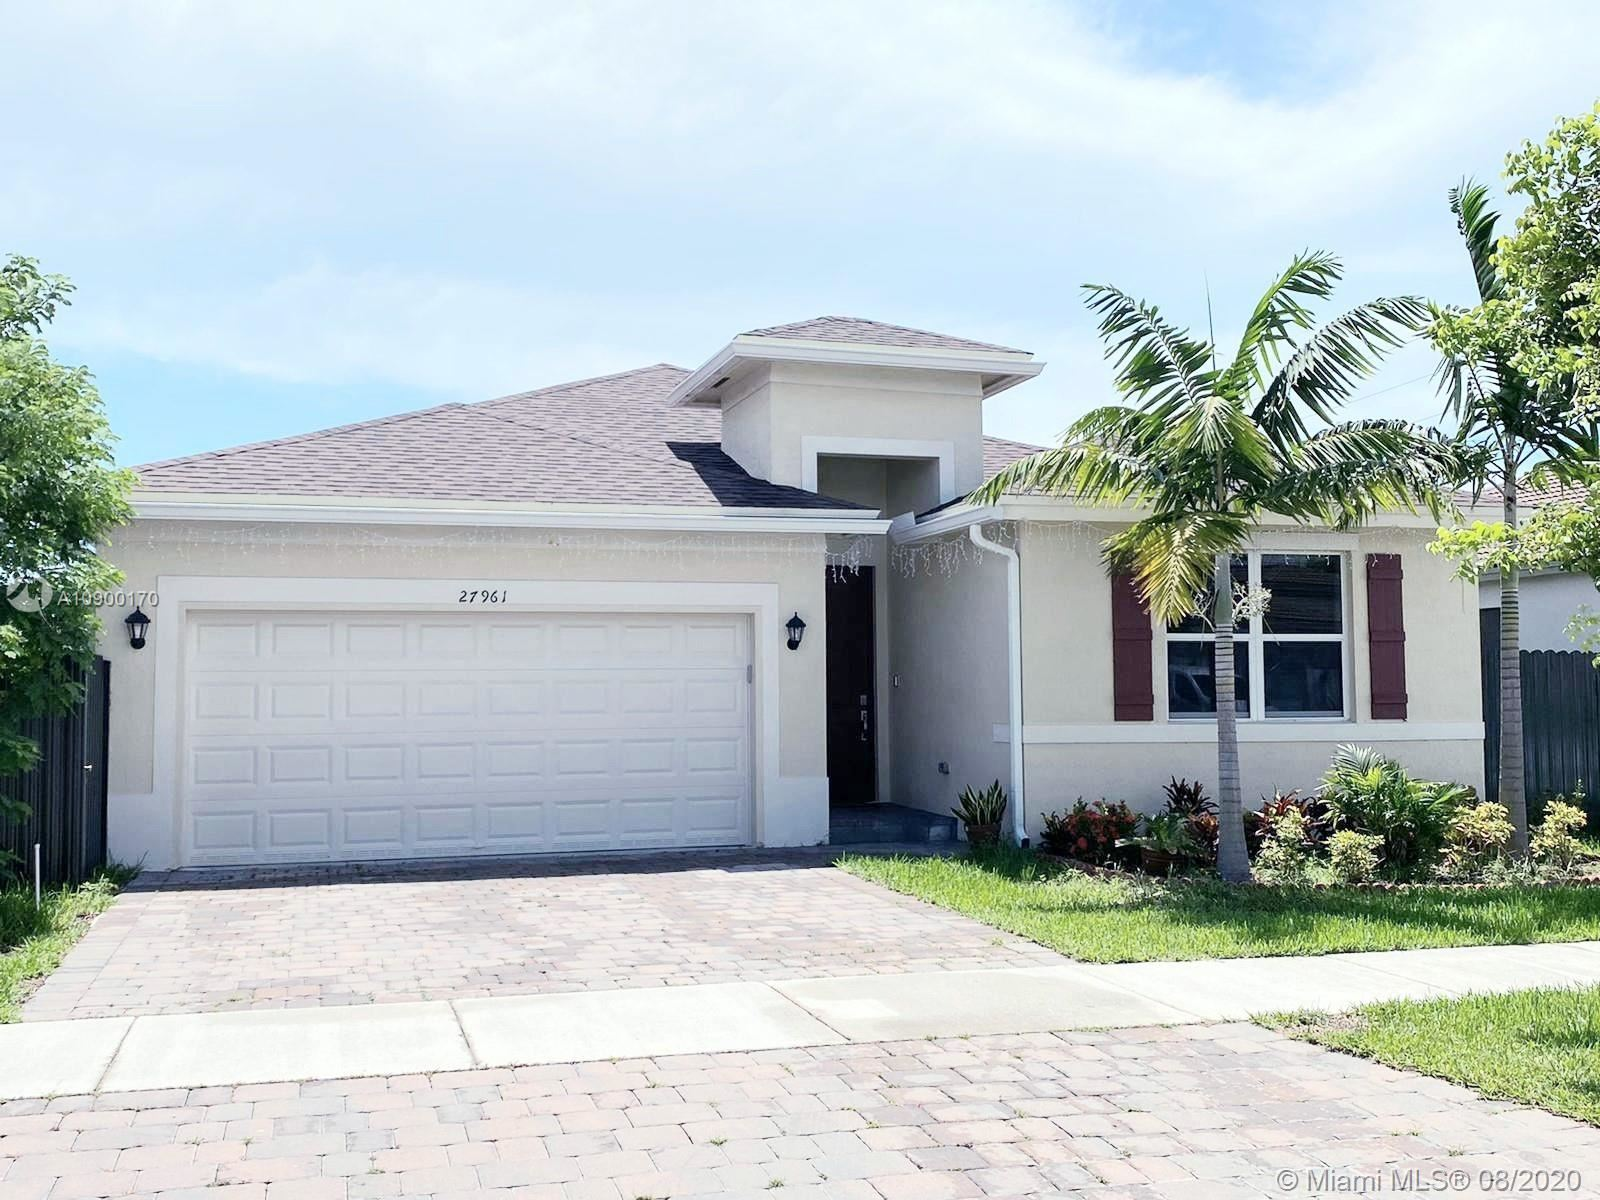 27961 SW 134th Ct, Homestead, FL 33032 - #: A10900170